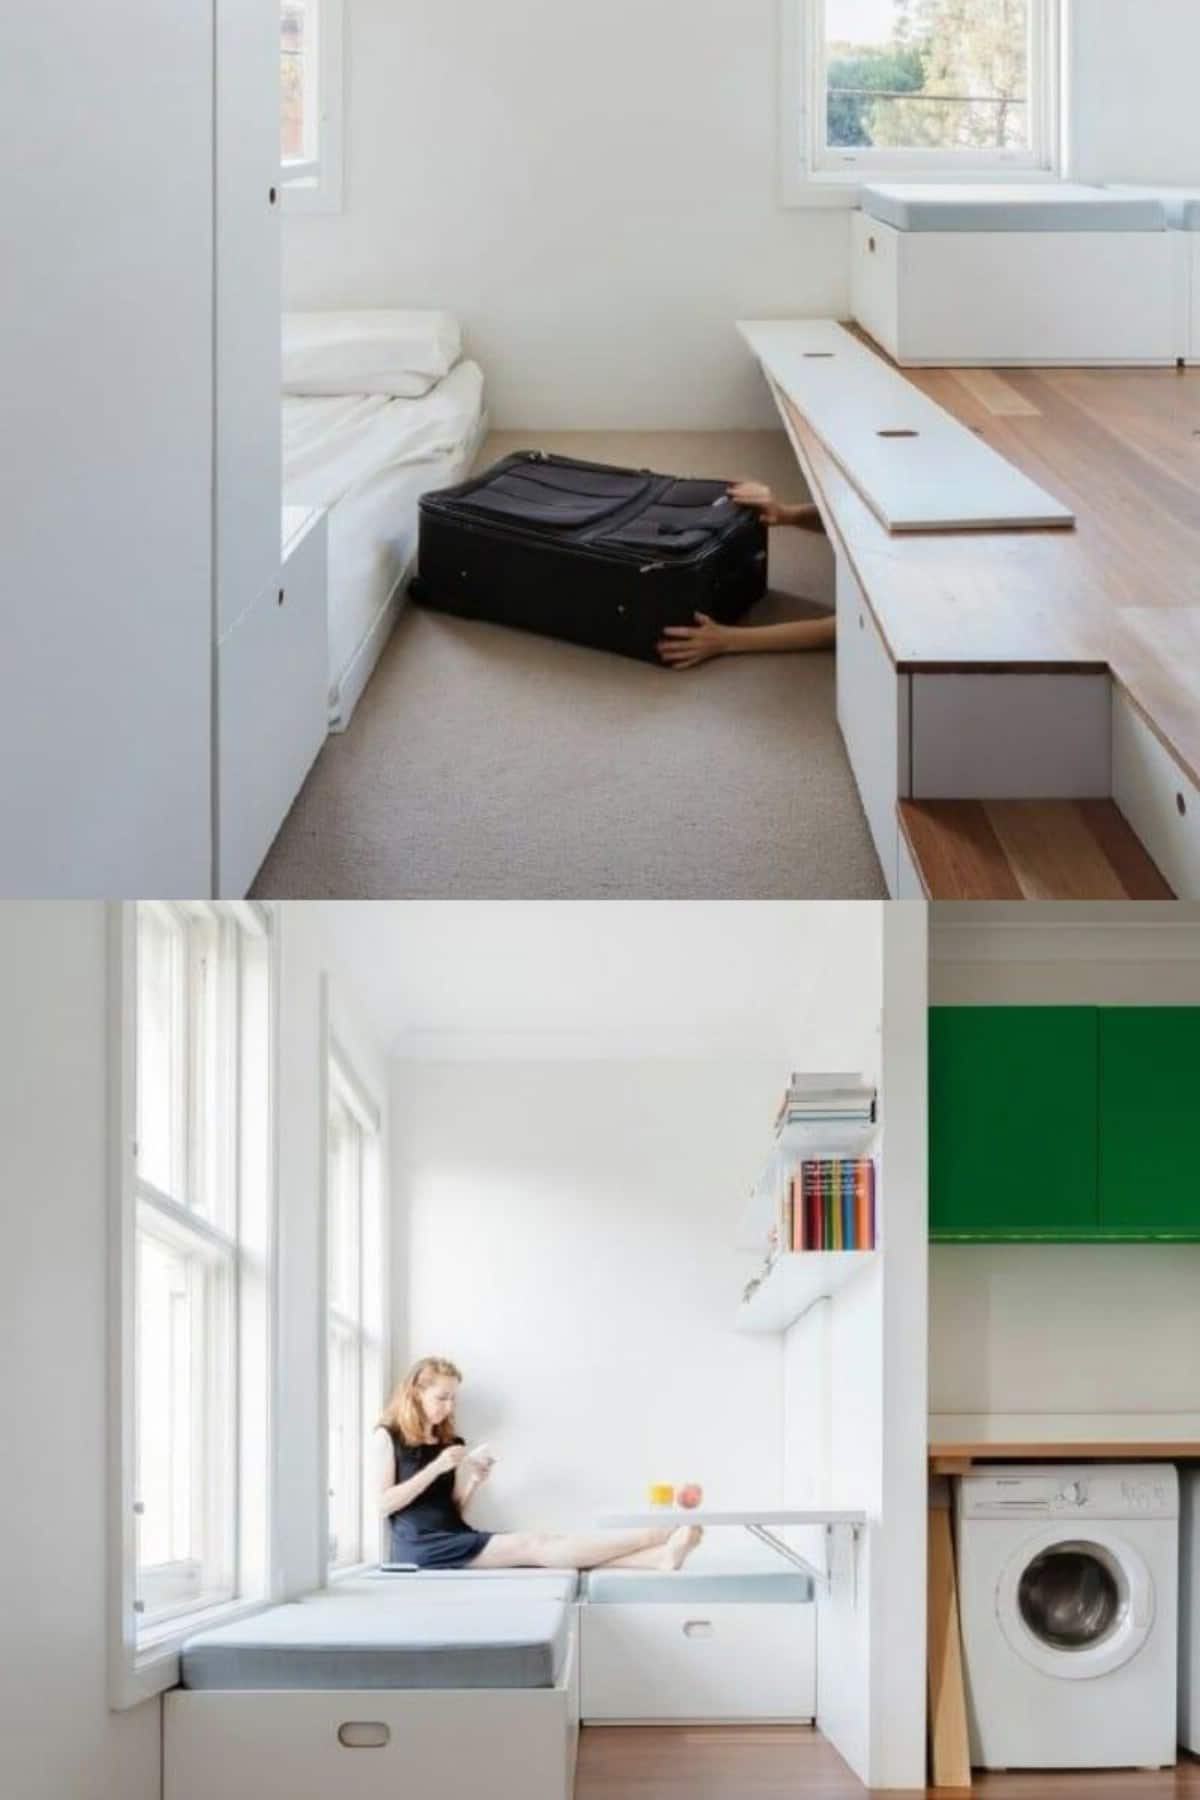 XS – SML 22 Square Meters